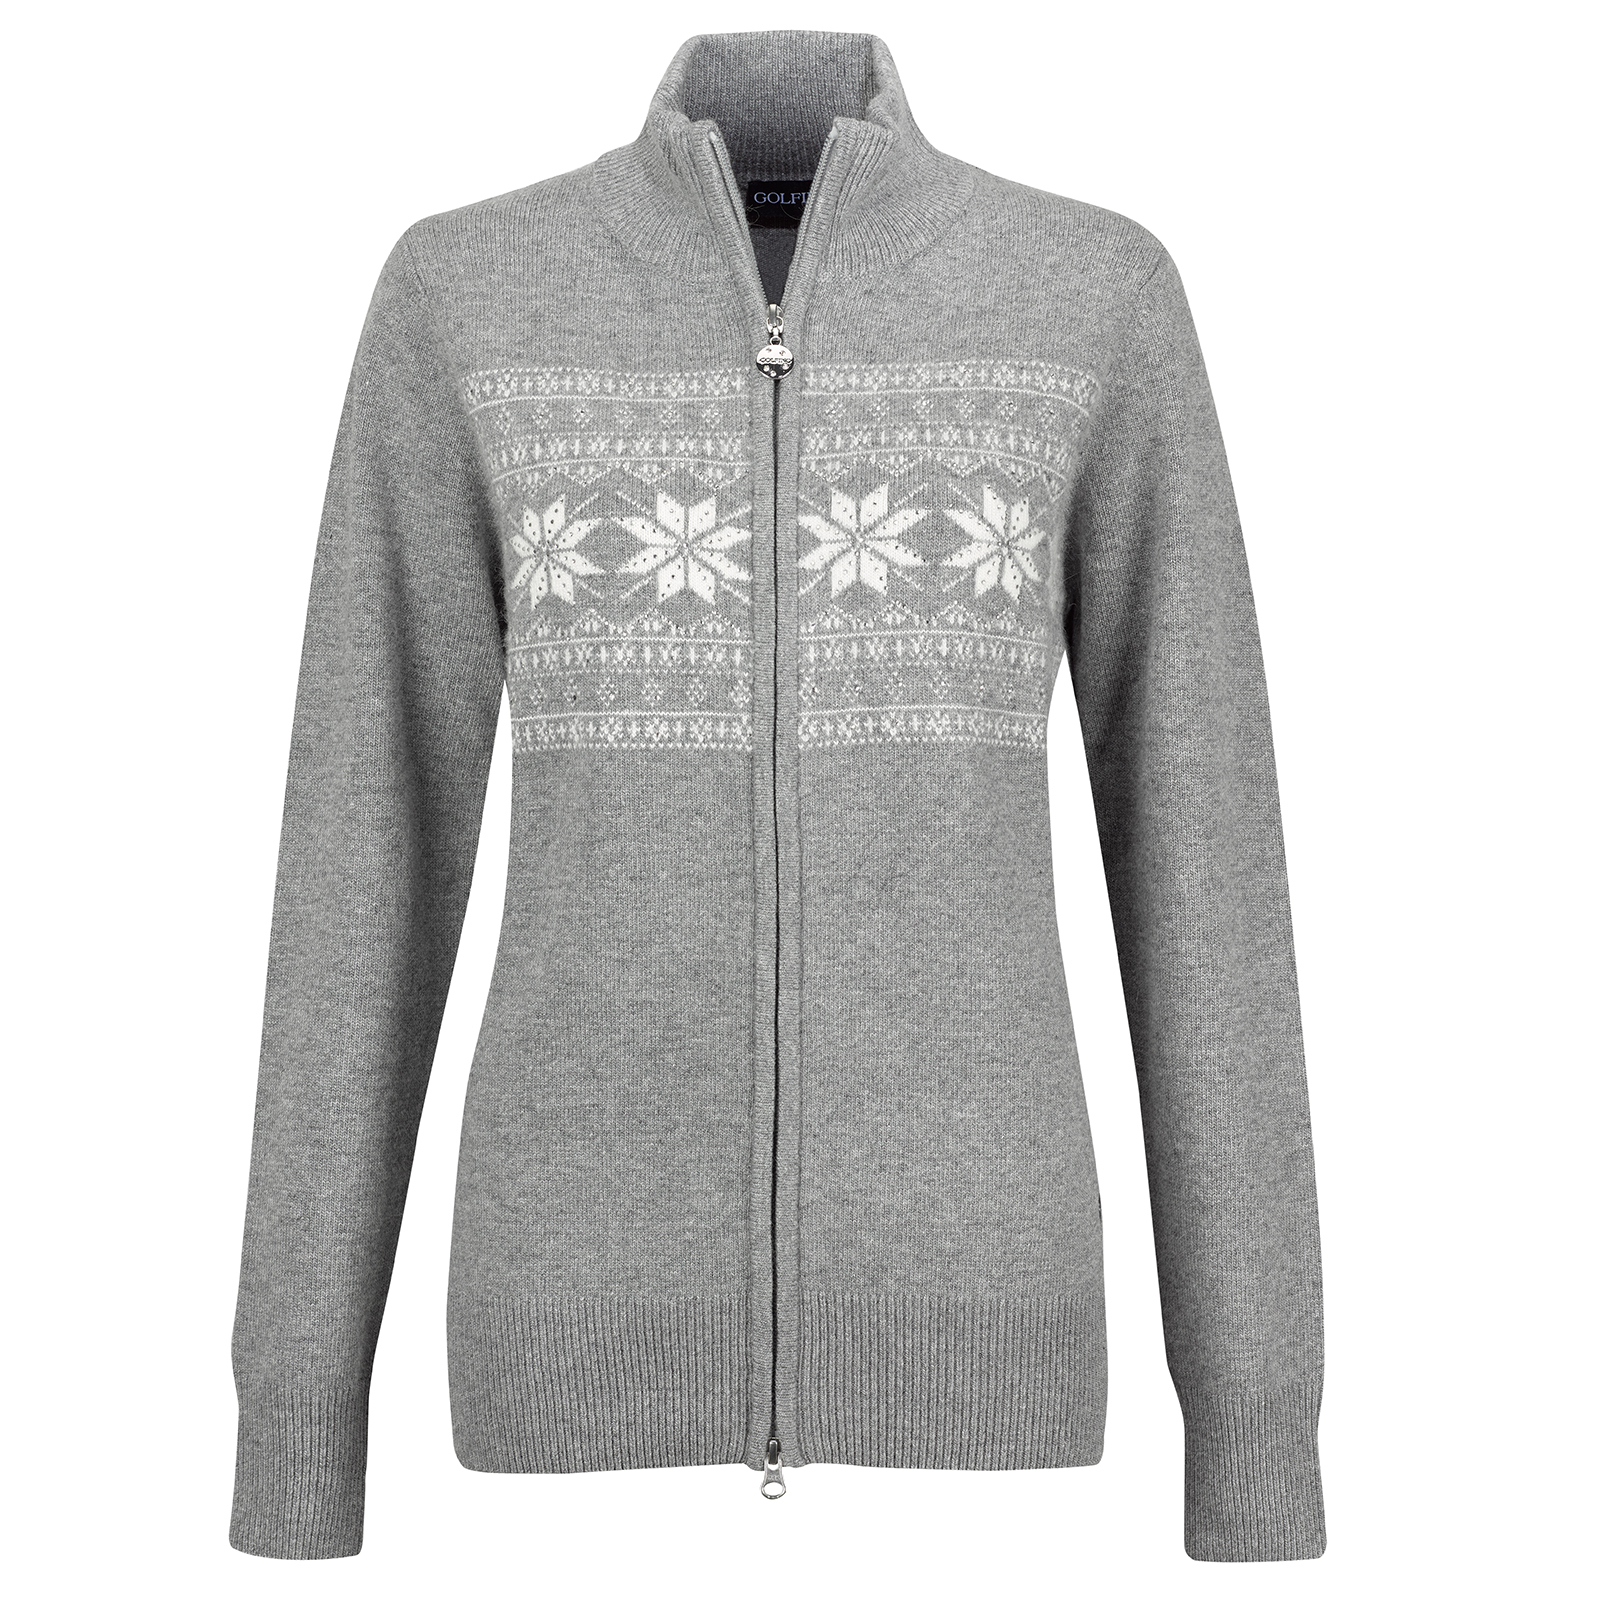 Ladies' luxury winter cardigan with Angora and crystals